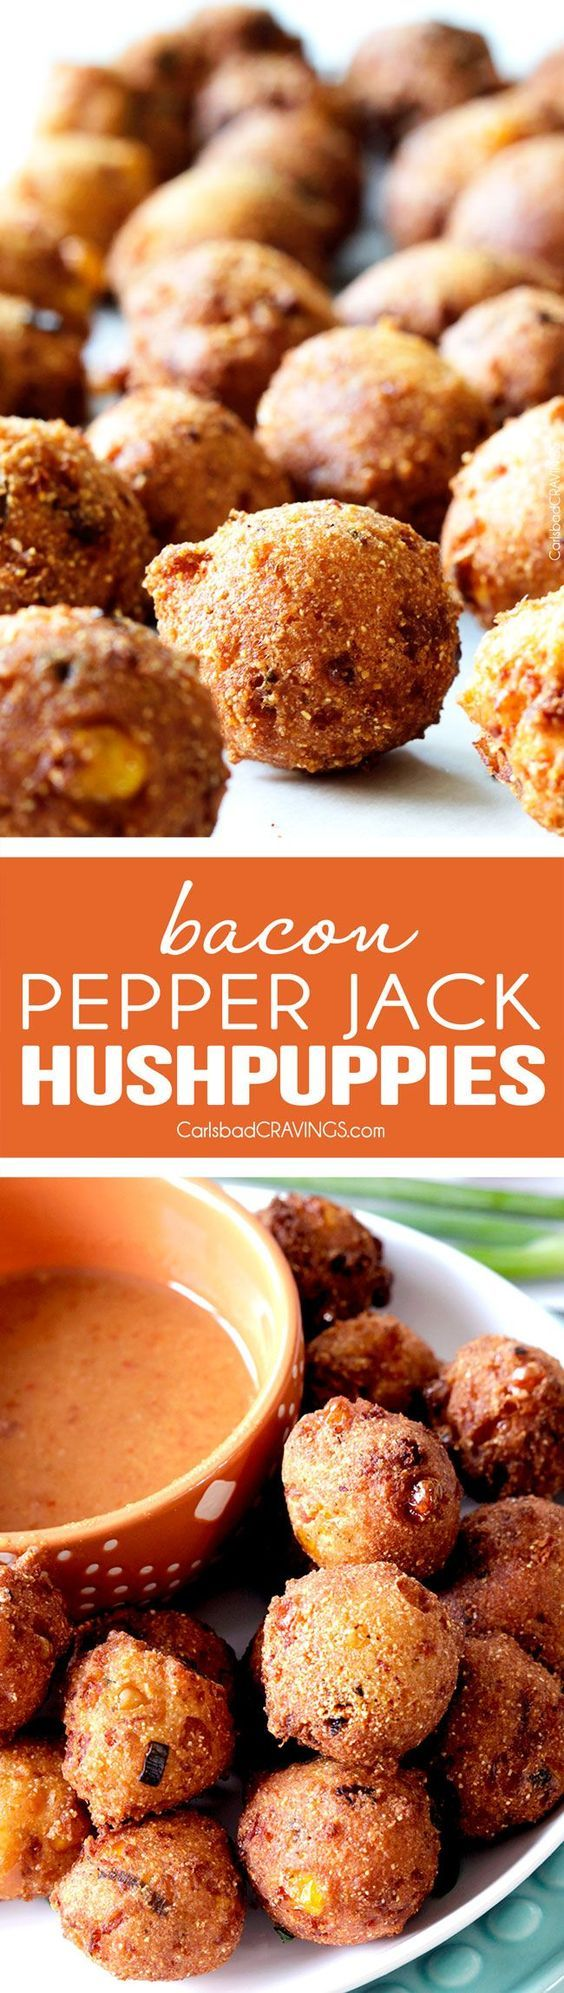 EASY Game Day/ANYDAY Bacon, Pepper Jack Hushpuppies with a crispy, golden outside and soft, cornbread inside dunked in the most tantalizing sweet and tangy Sweet Chili Dijon Sauce are UNREAL!  Everyone always begs me to bring these!